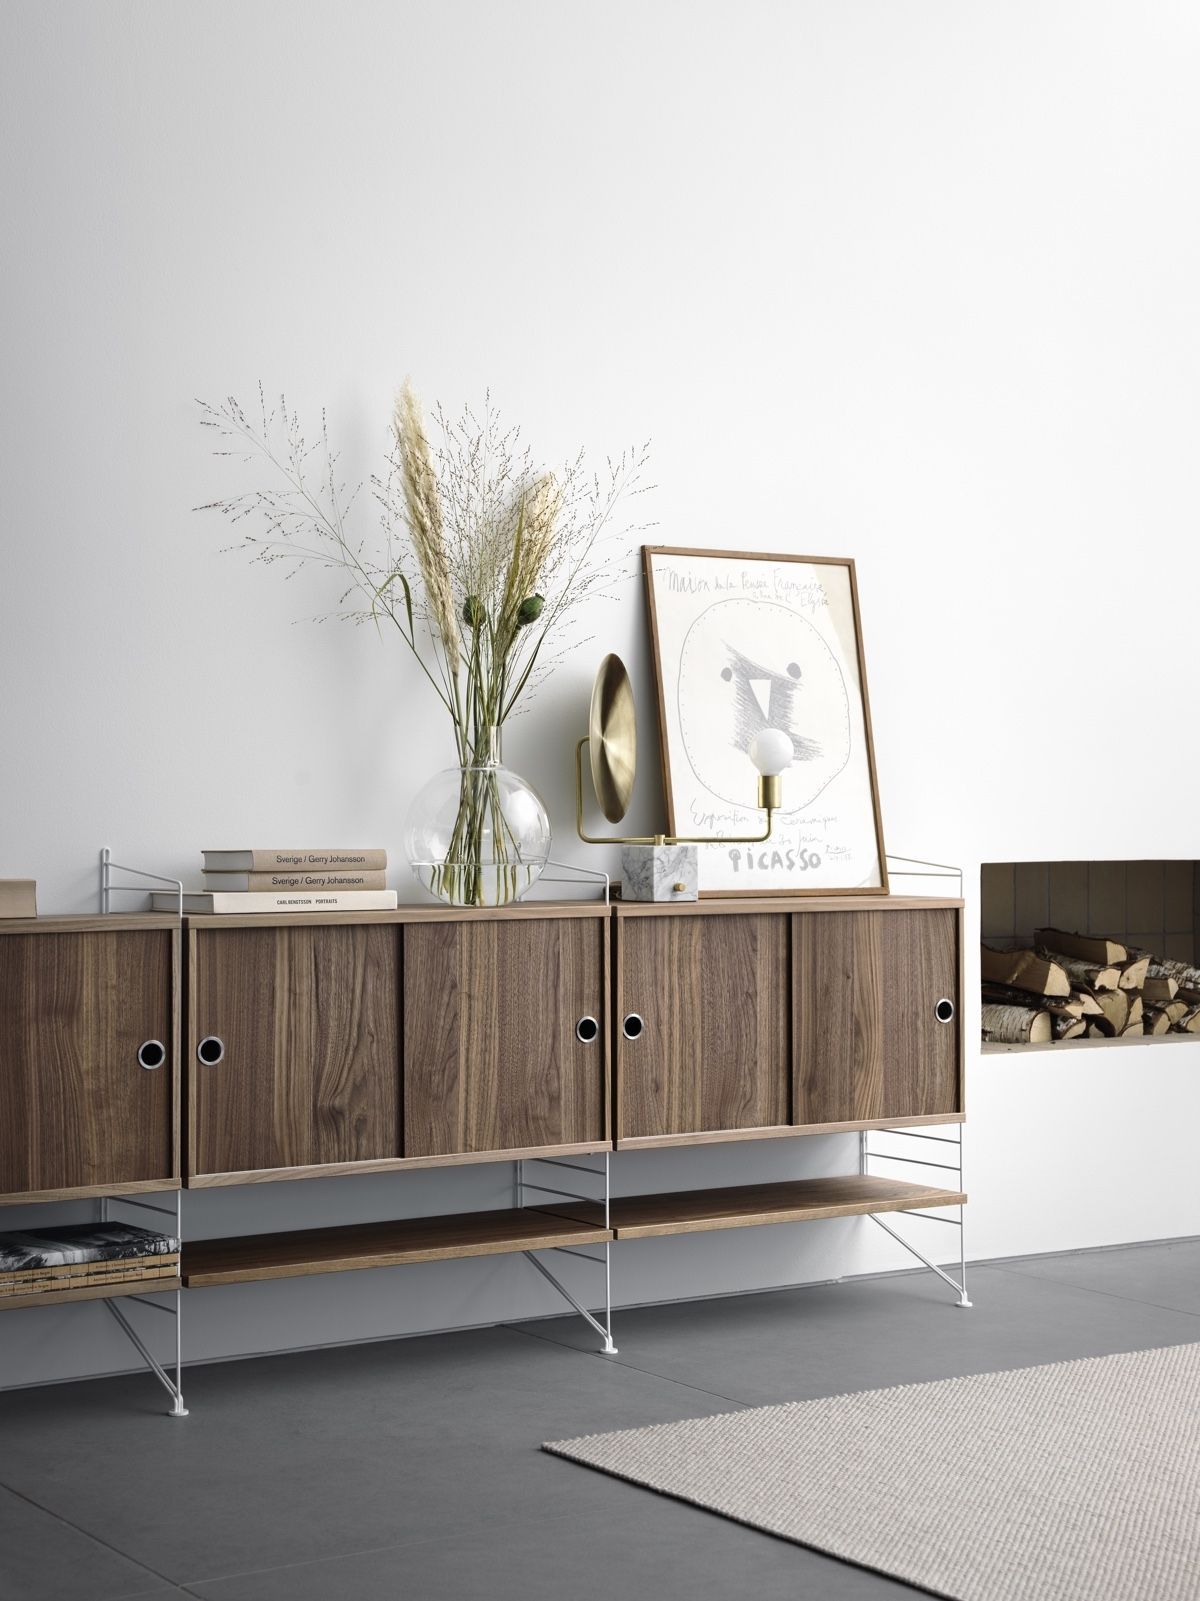 String Floor Panel 85 x 30cm used on walnut sideboard